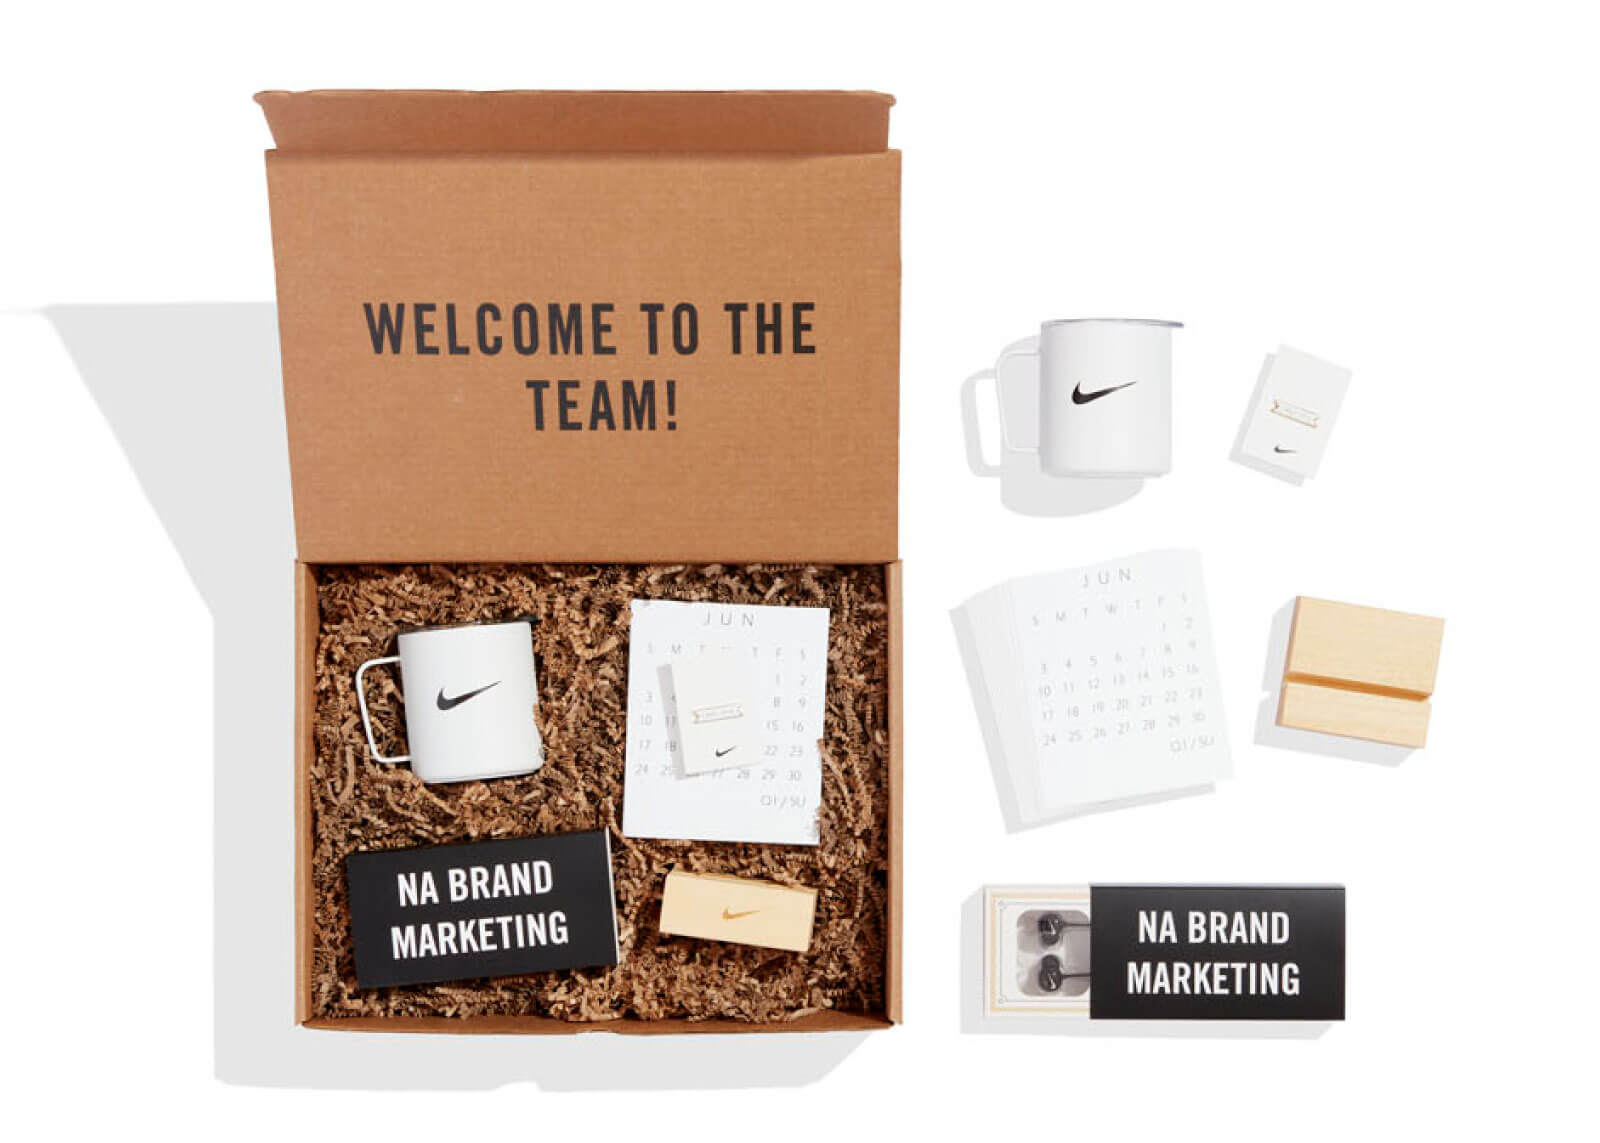 Nike welcome kit